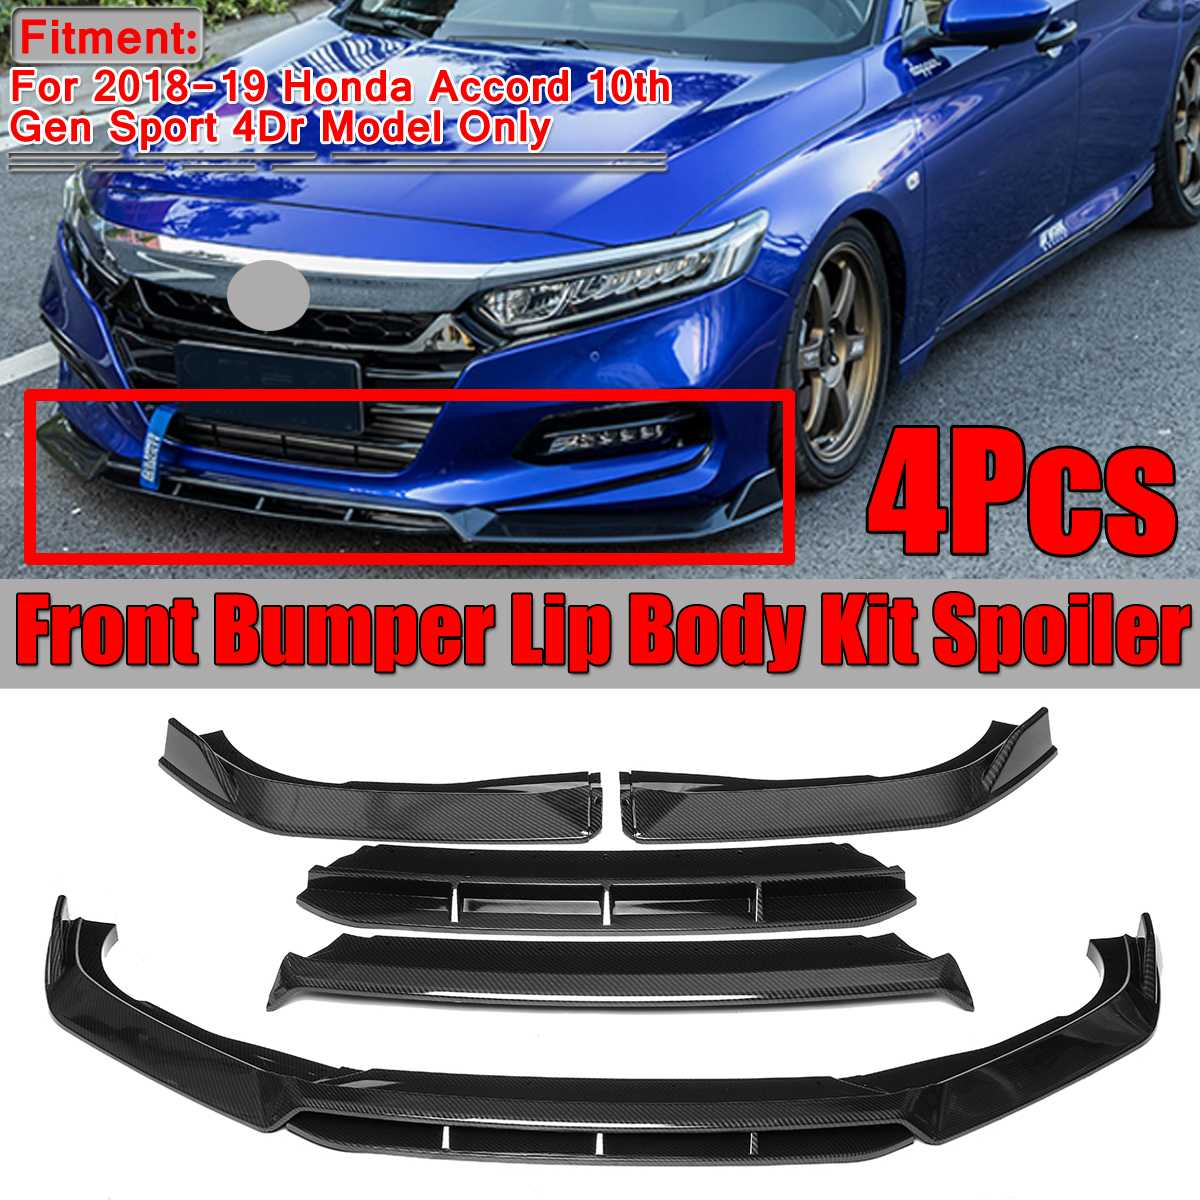 EZAUTOWRAP Universal Carbon Fiber Red PU Rubber Front Bumper Lip Splitter Spoiler Chin Body Air Wing Kit 8FT